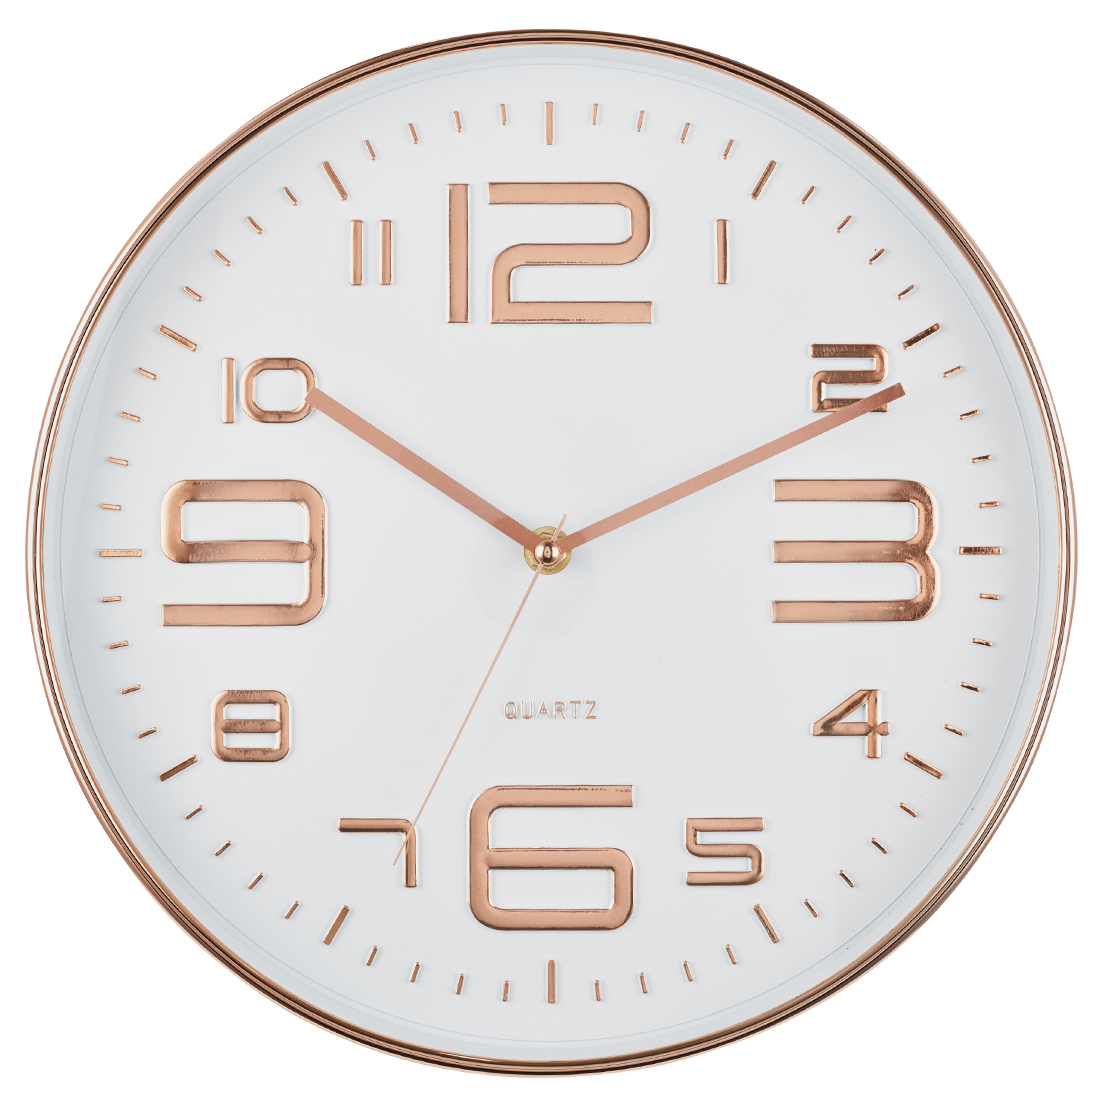 Aeon Metal Rim Wall Clock Plastic Modern Clocks in White&Copper Colour by Living Essence